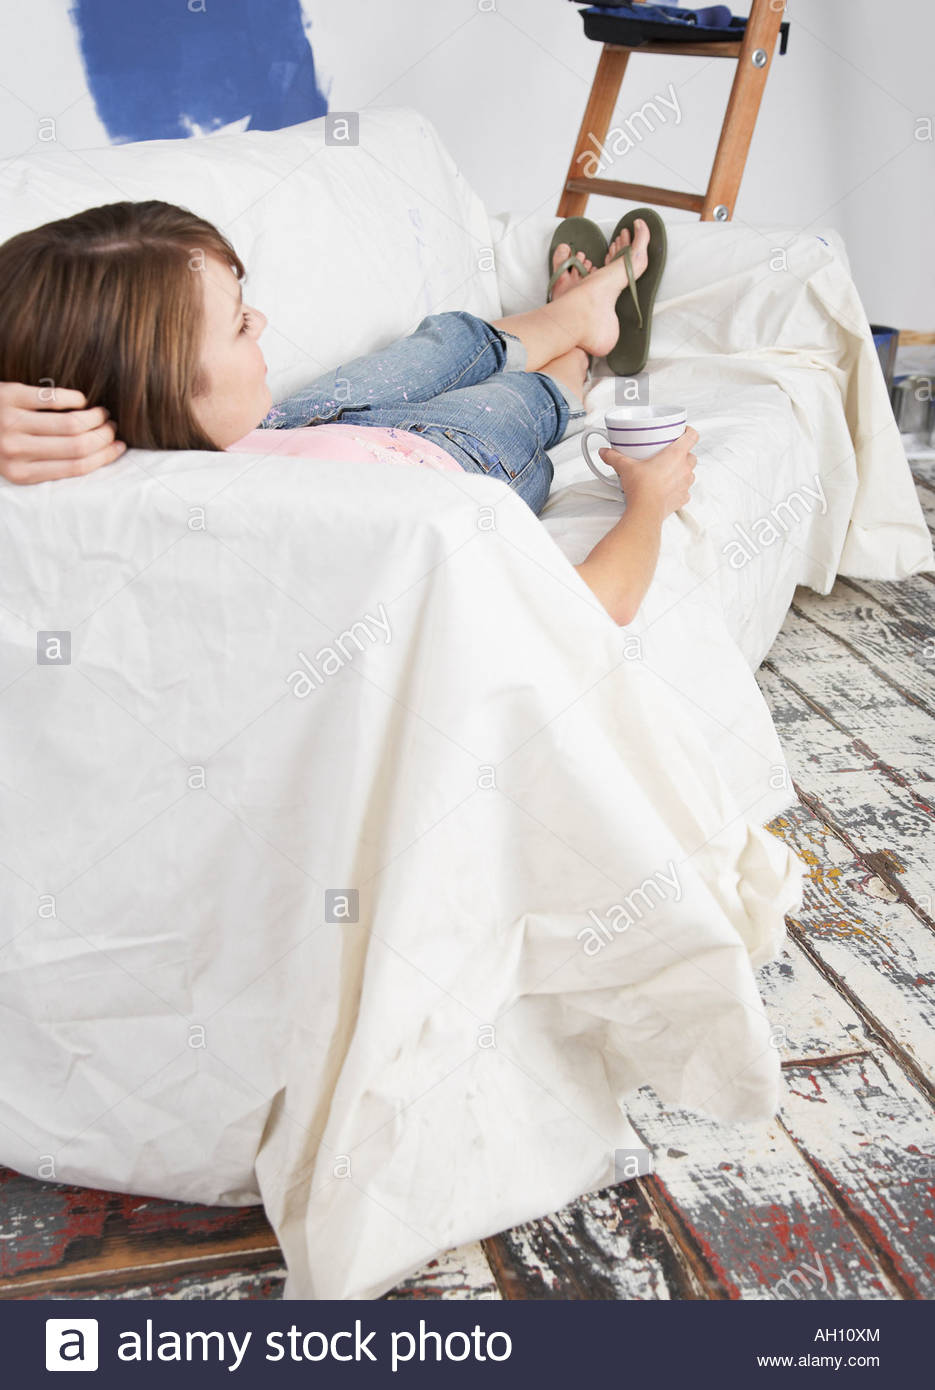 Woman on sofa with mug - Stock Image